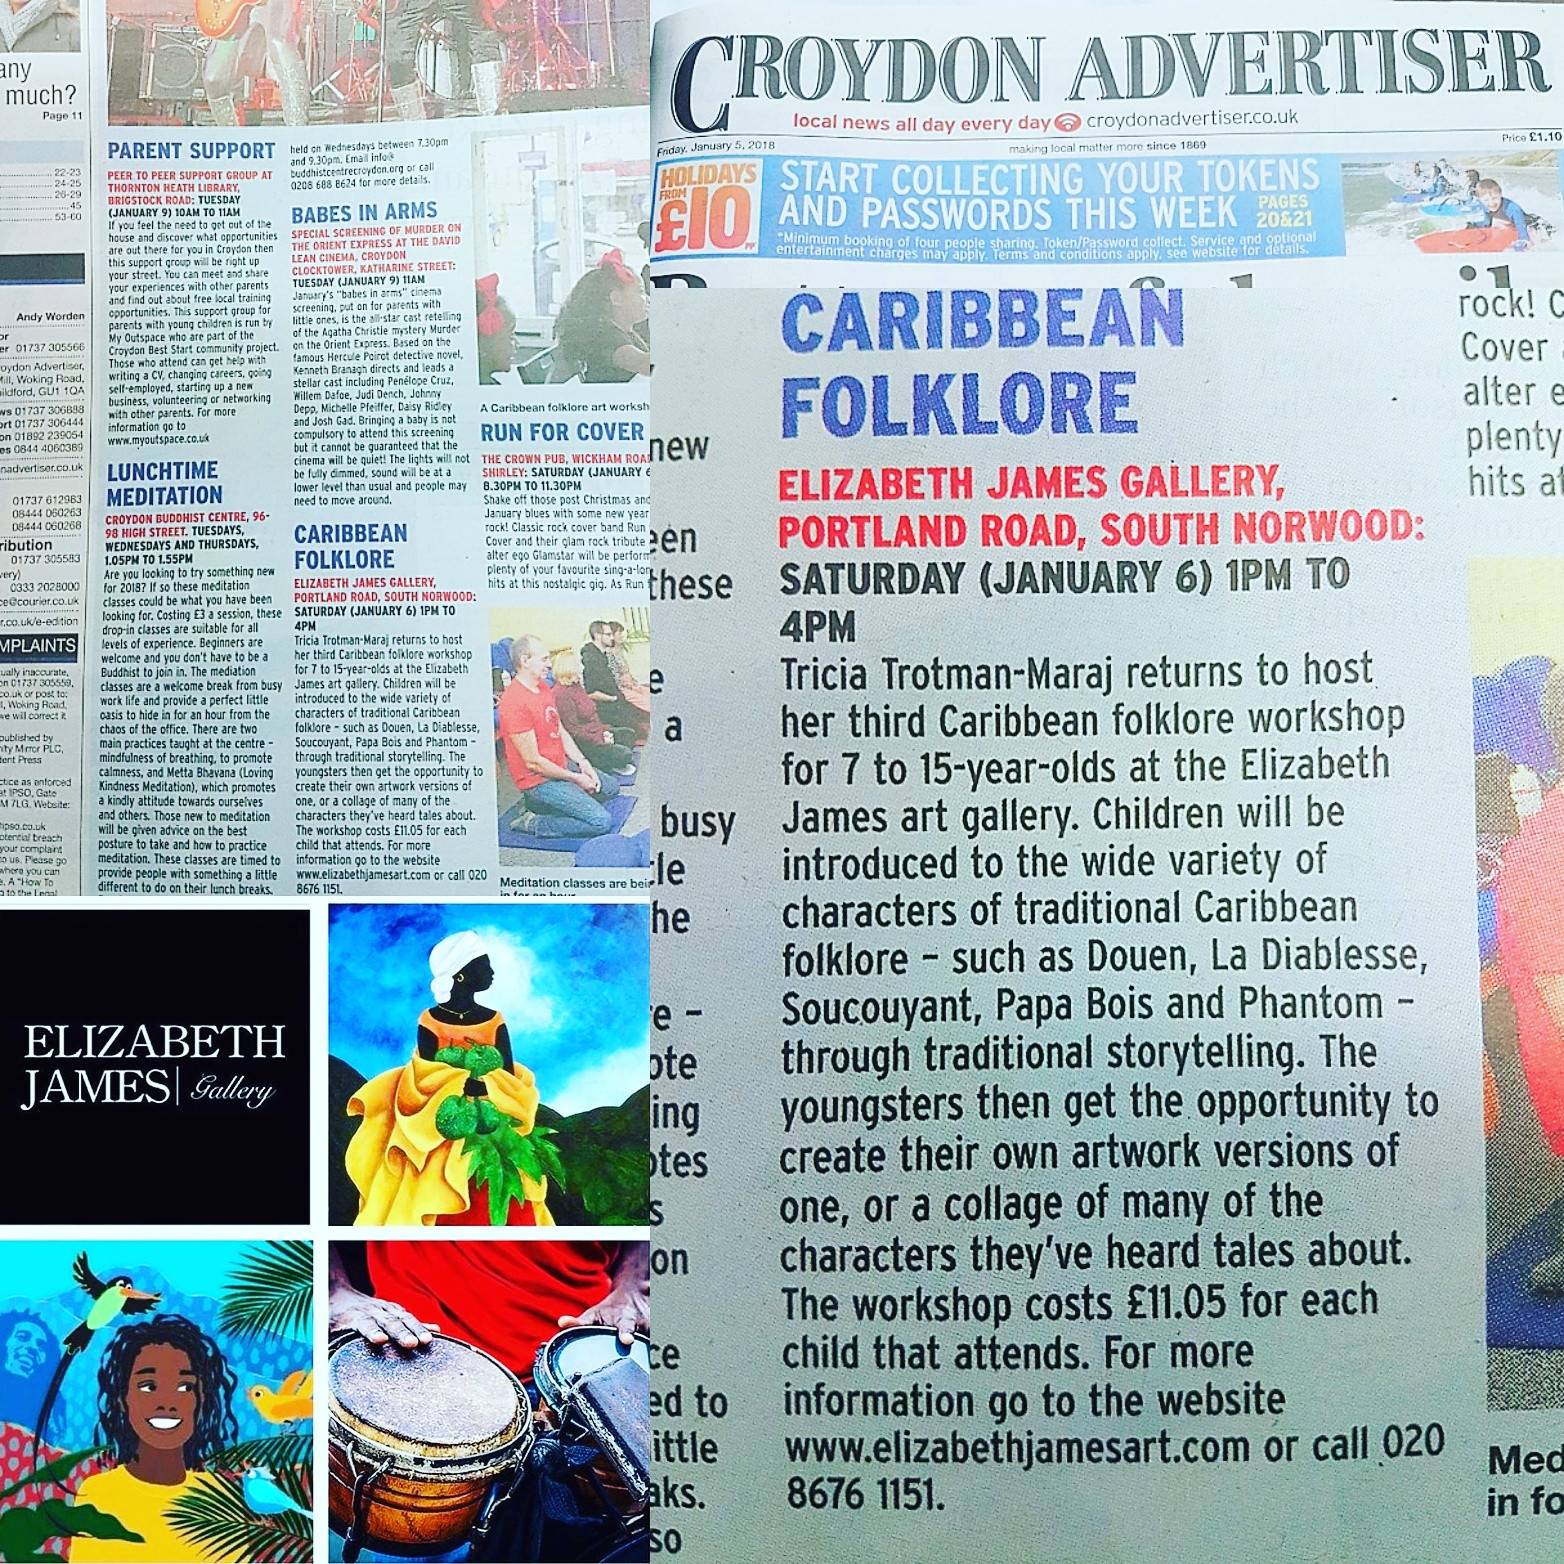 Croydon Advertiser Newspaper.jpg